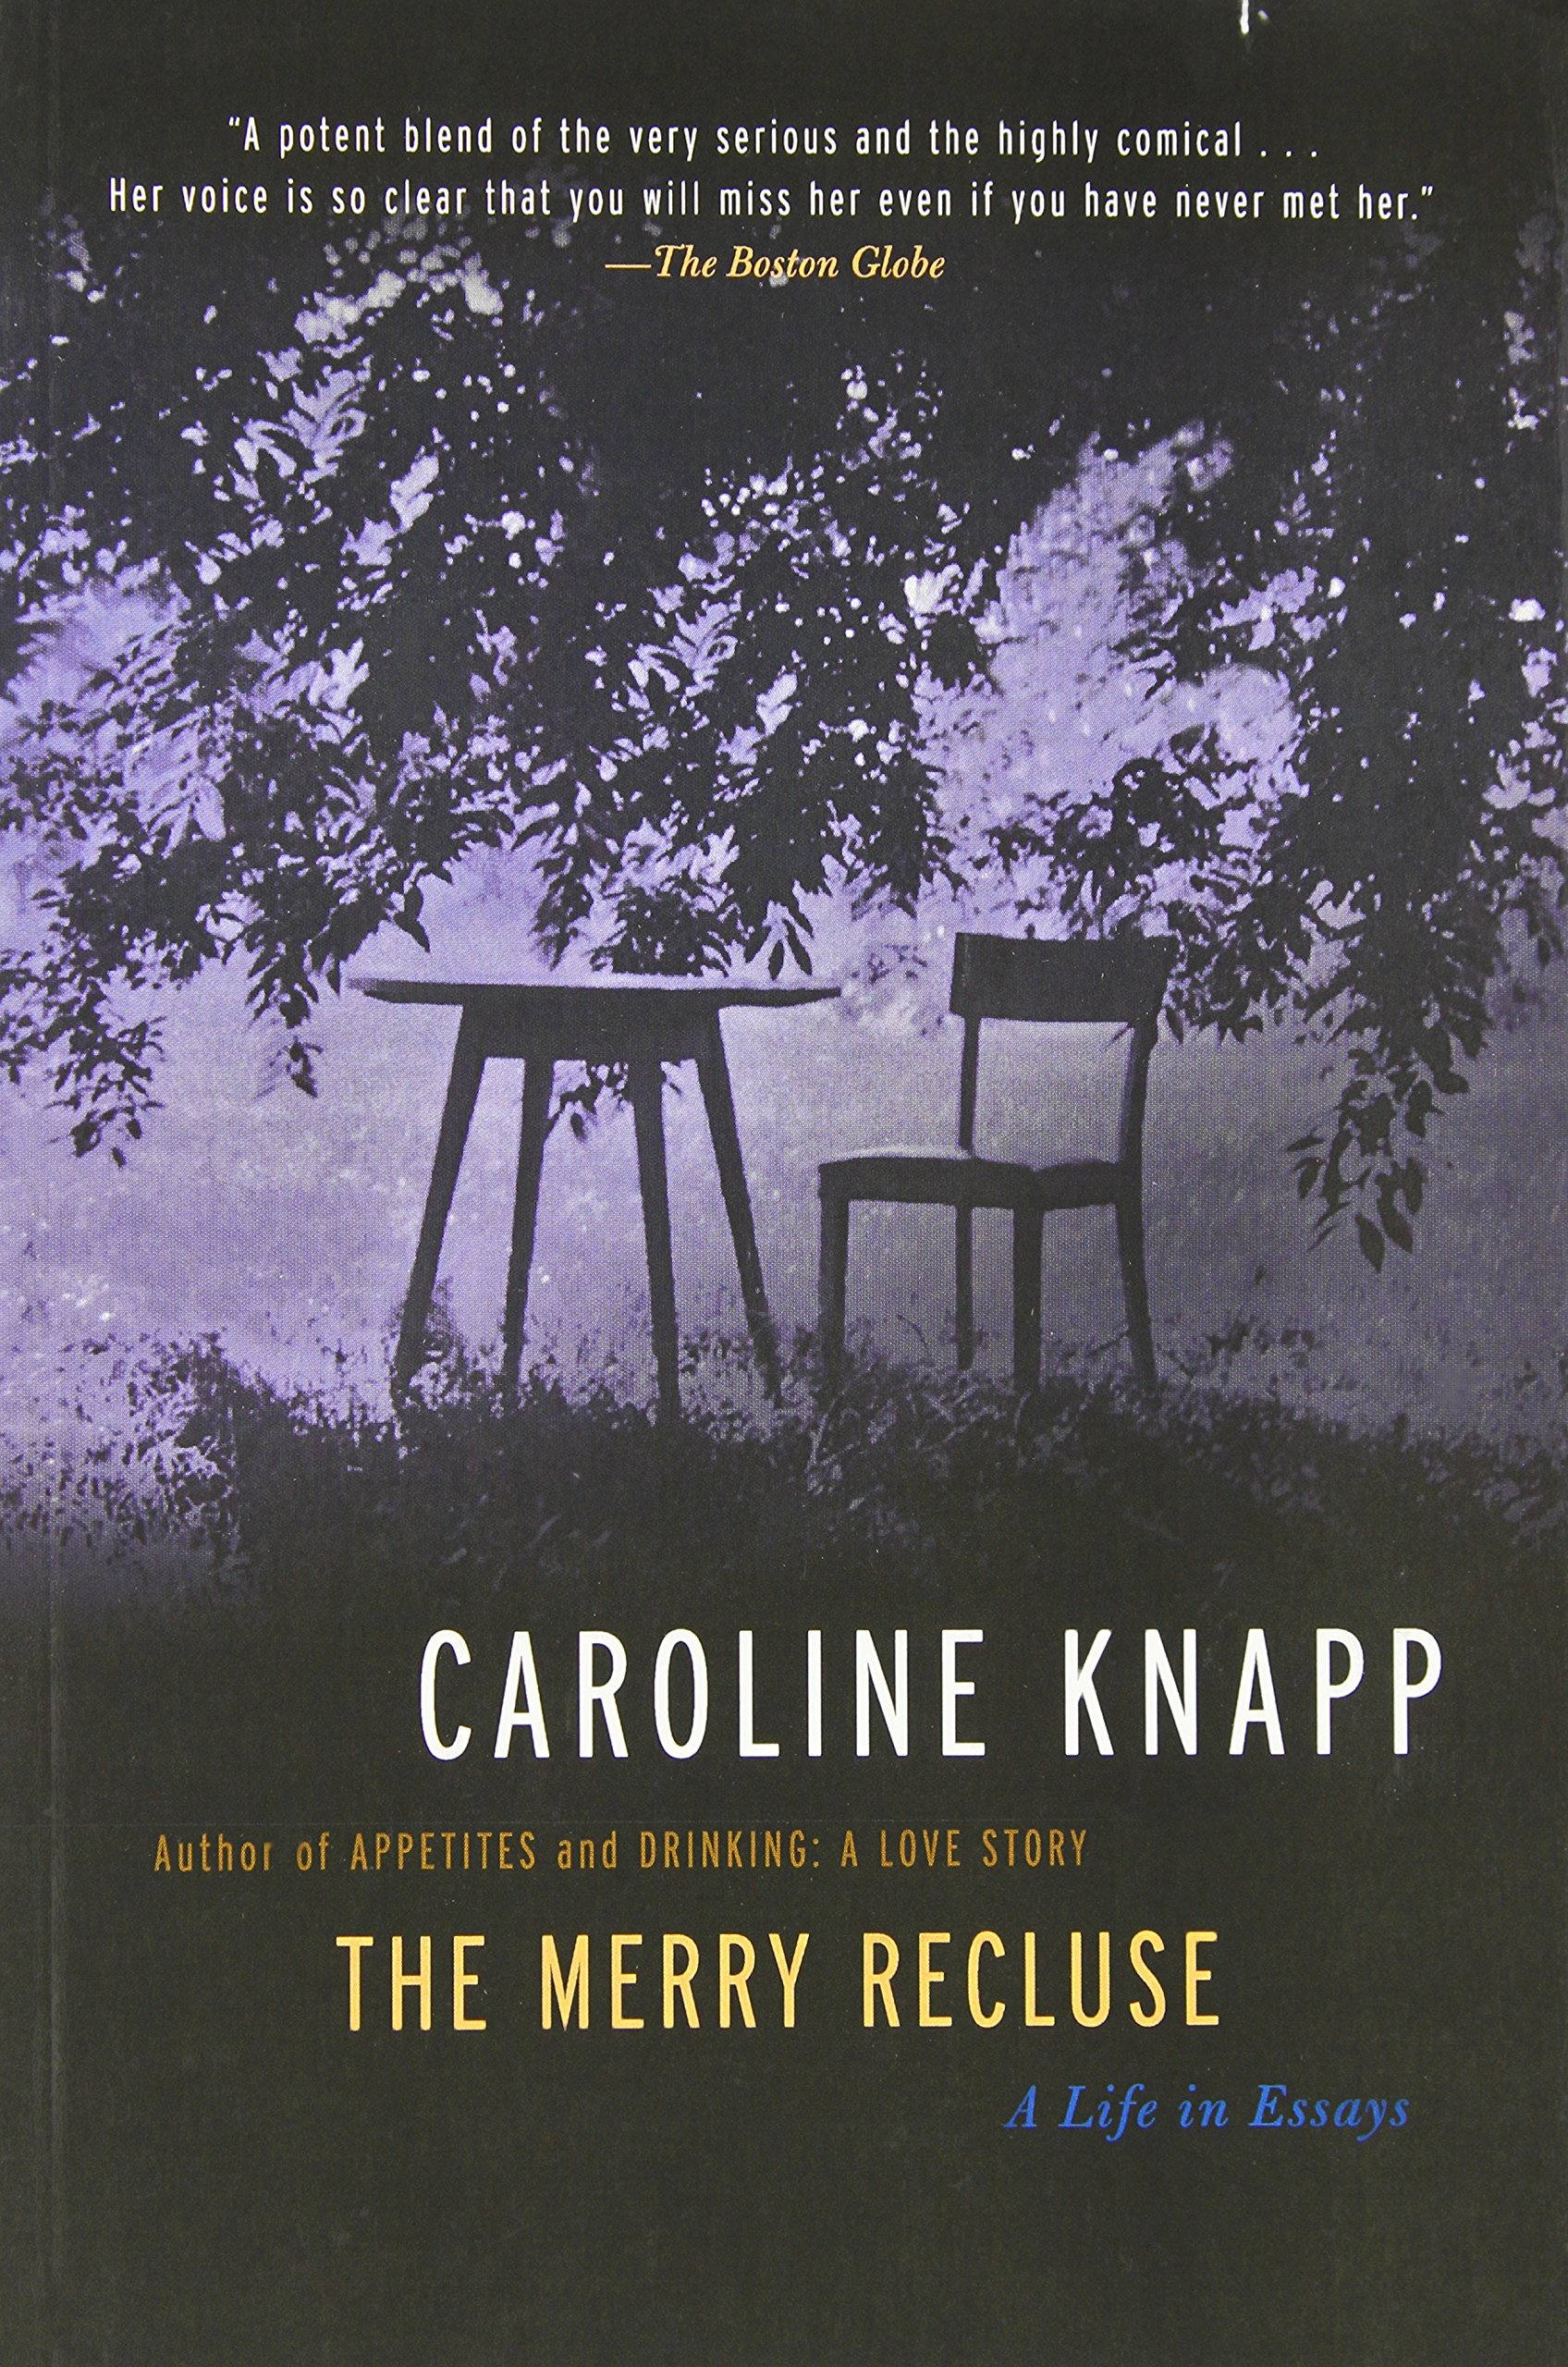 the merry recluse a life in essays caroline knapp 9781582433141 the merry recluse a life in essays caroline knapp 9781582433141 com books